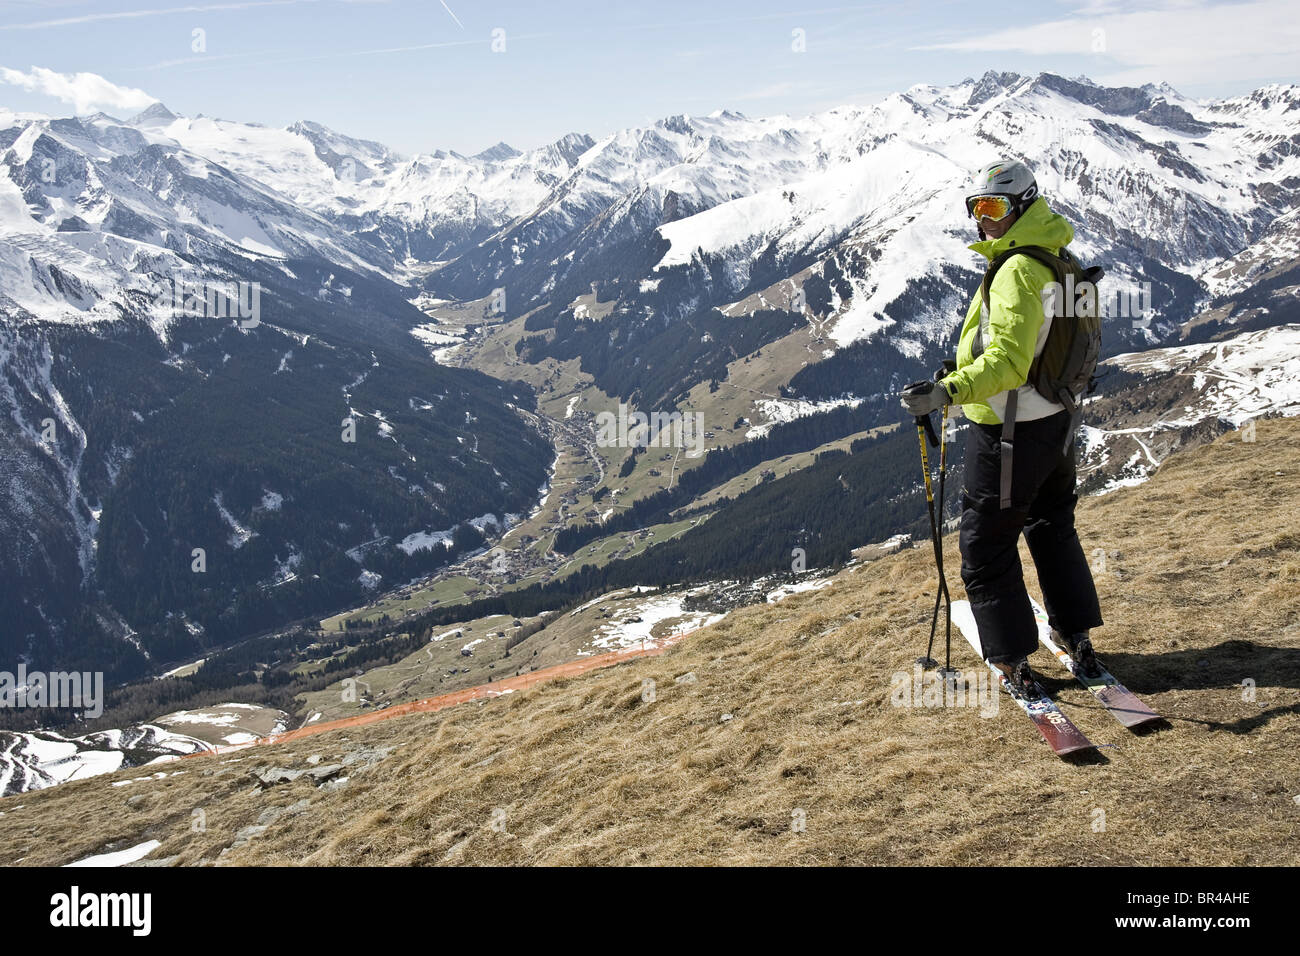 A man pauses at the top of a snowless ski trail in Mayrhofen, Austria. - Stock Image